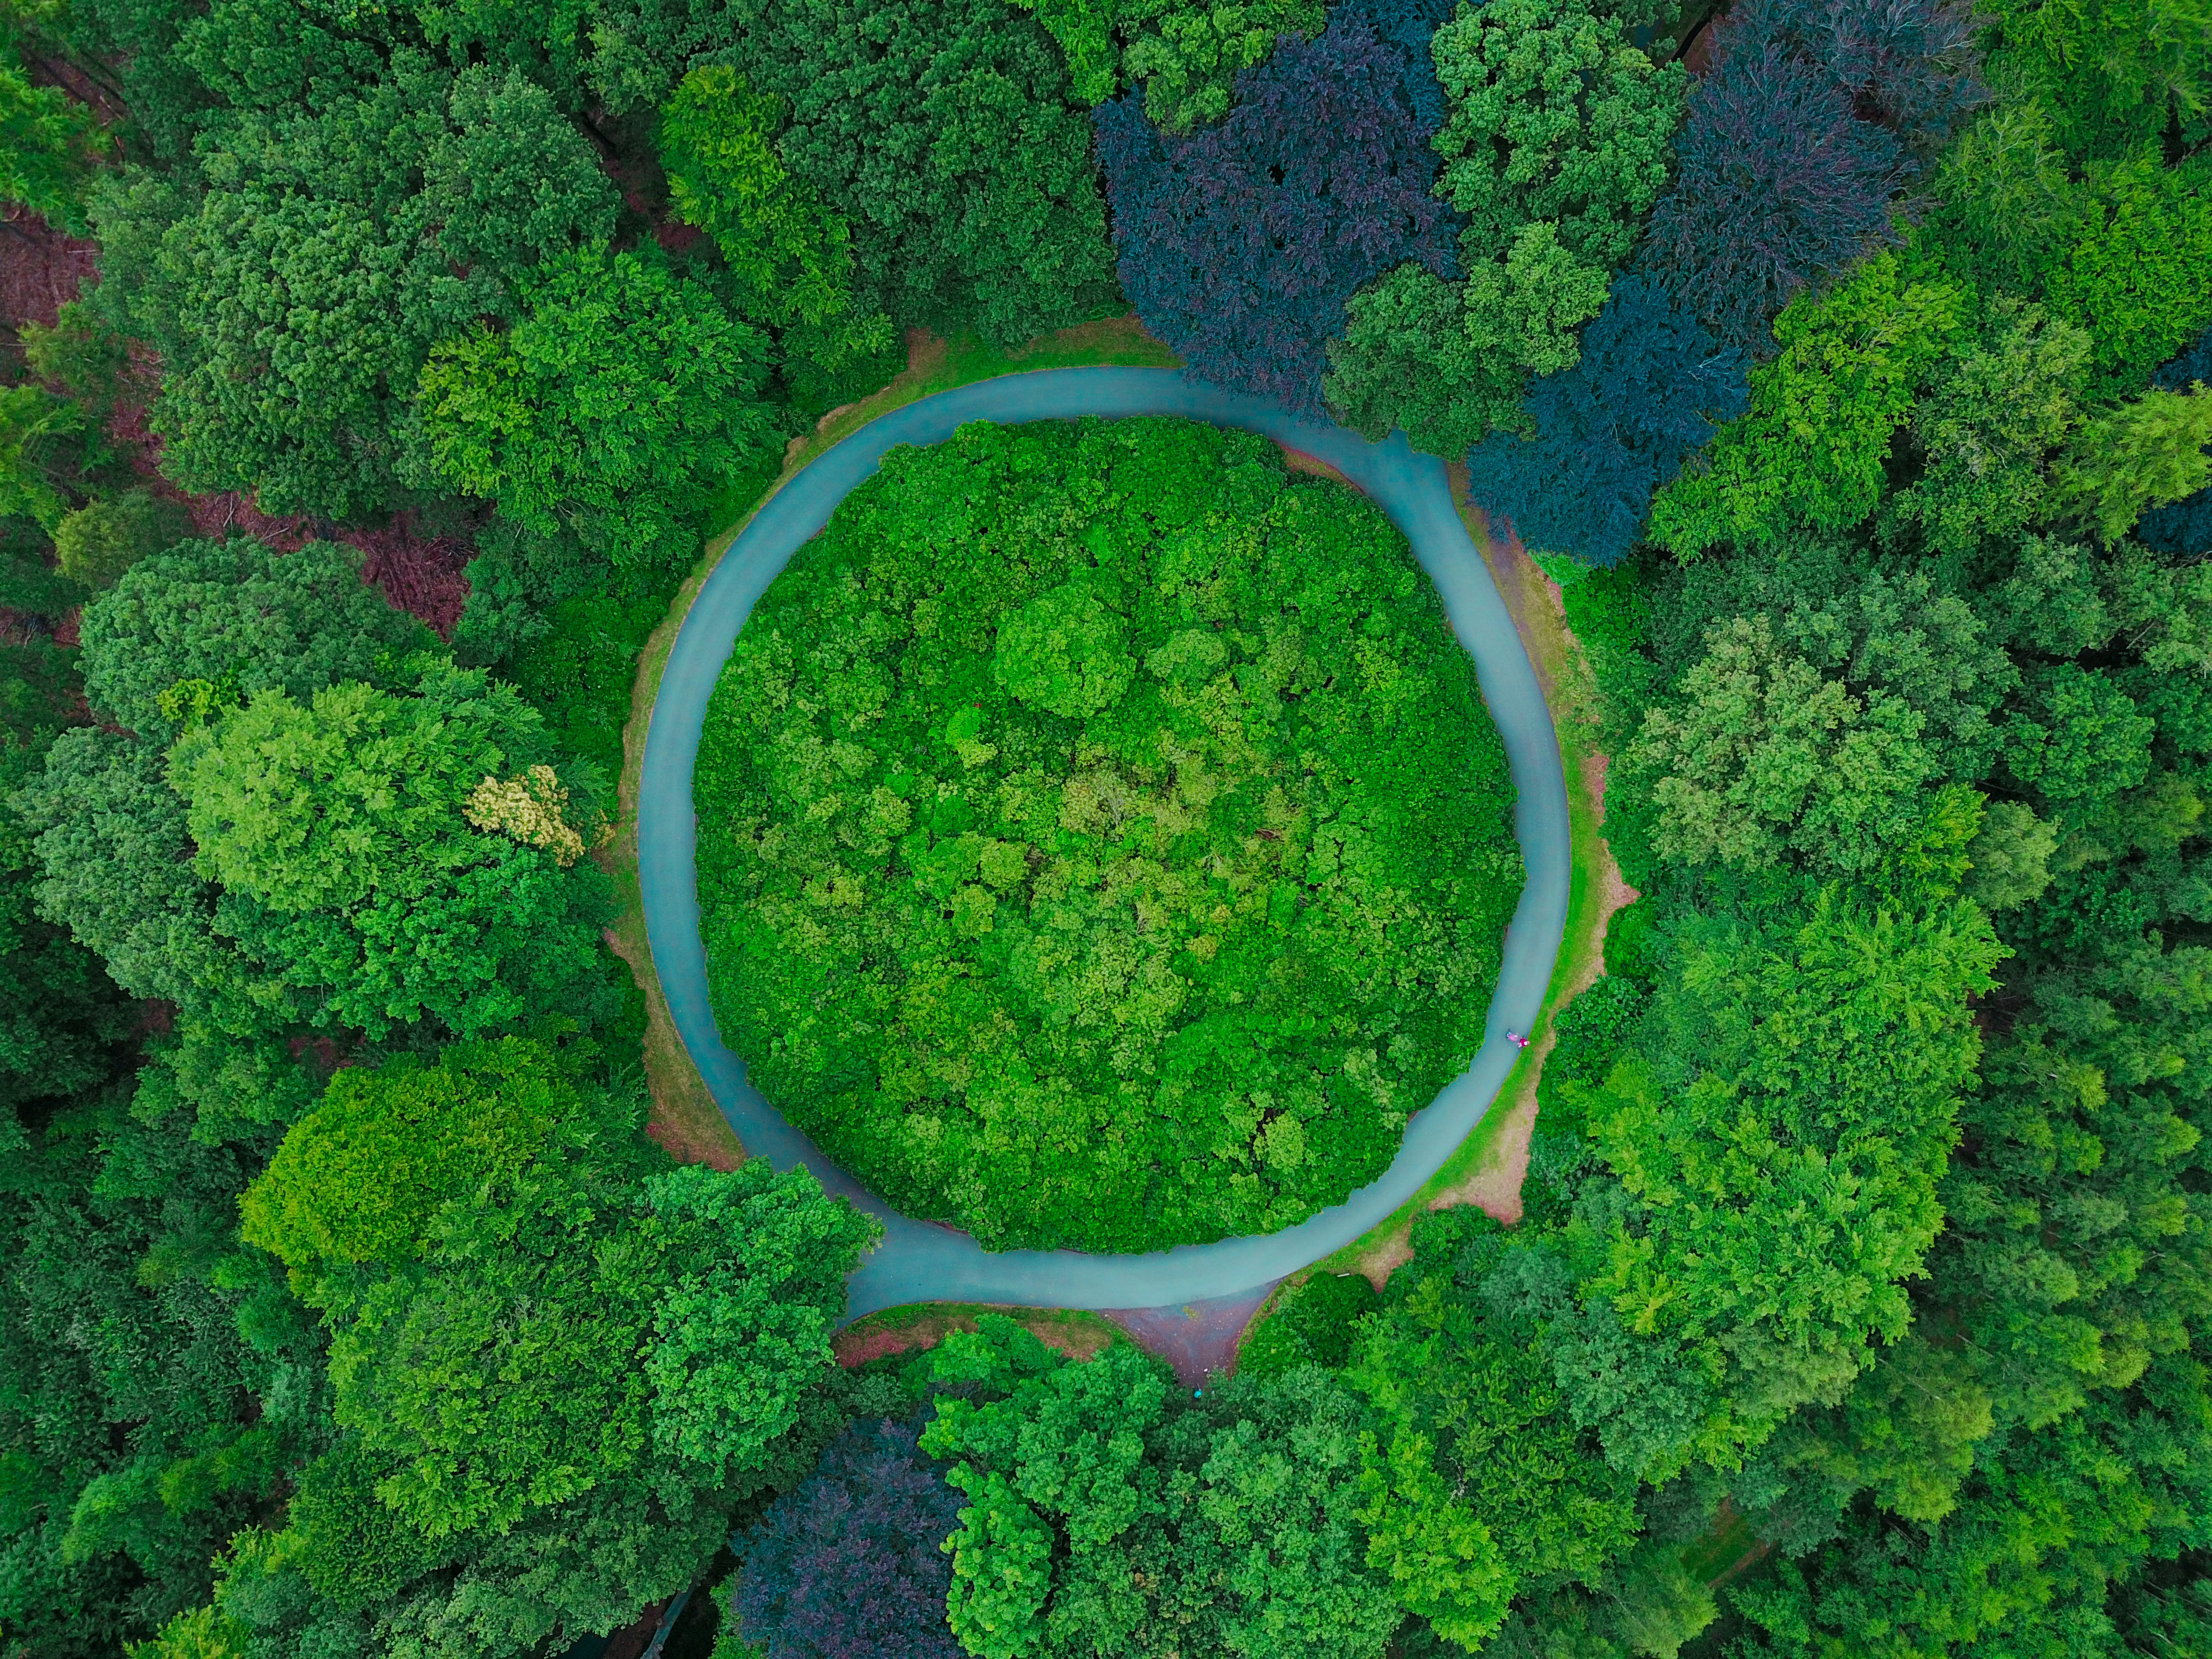 Earth Overshoot Day 2019 is July 29